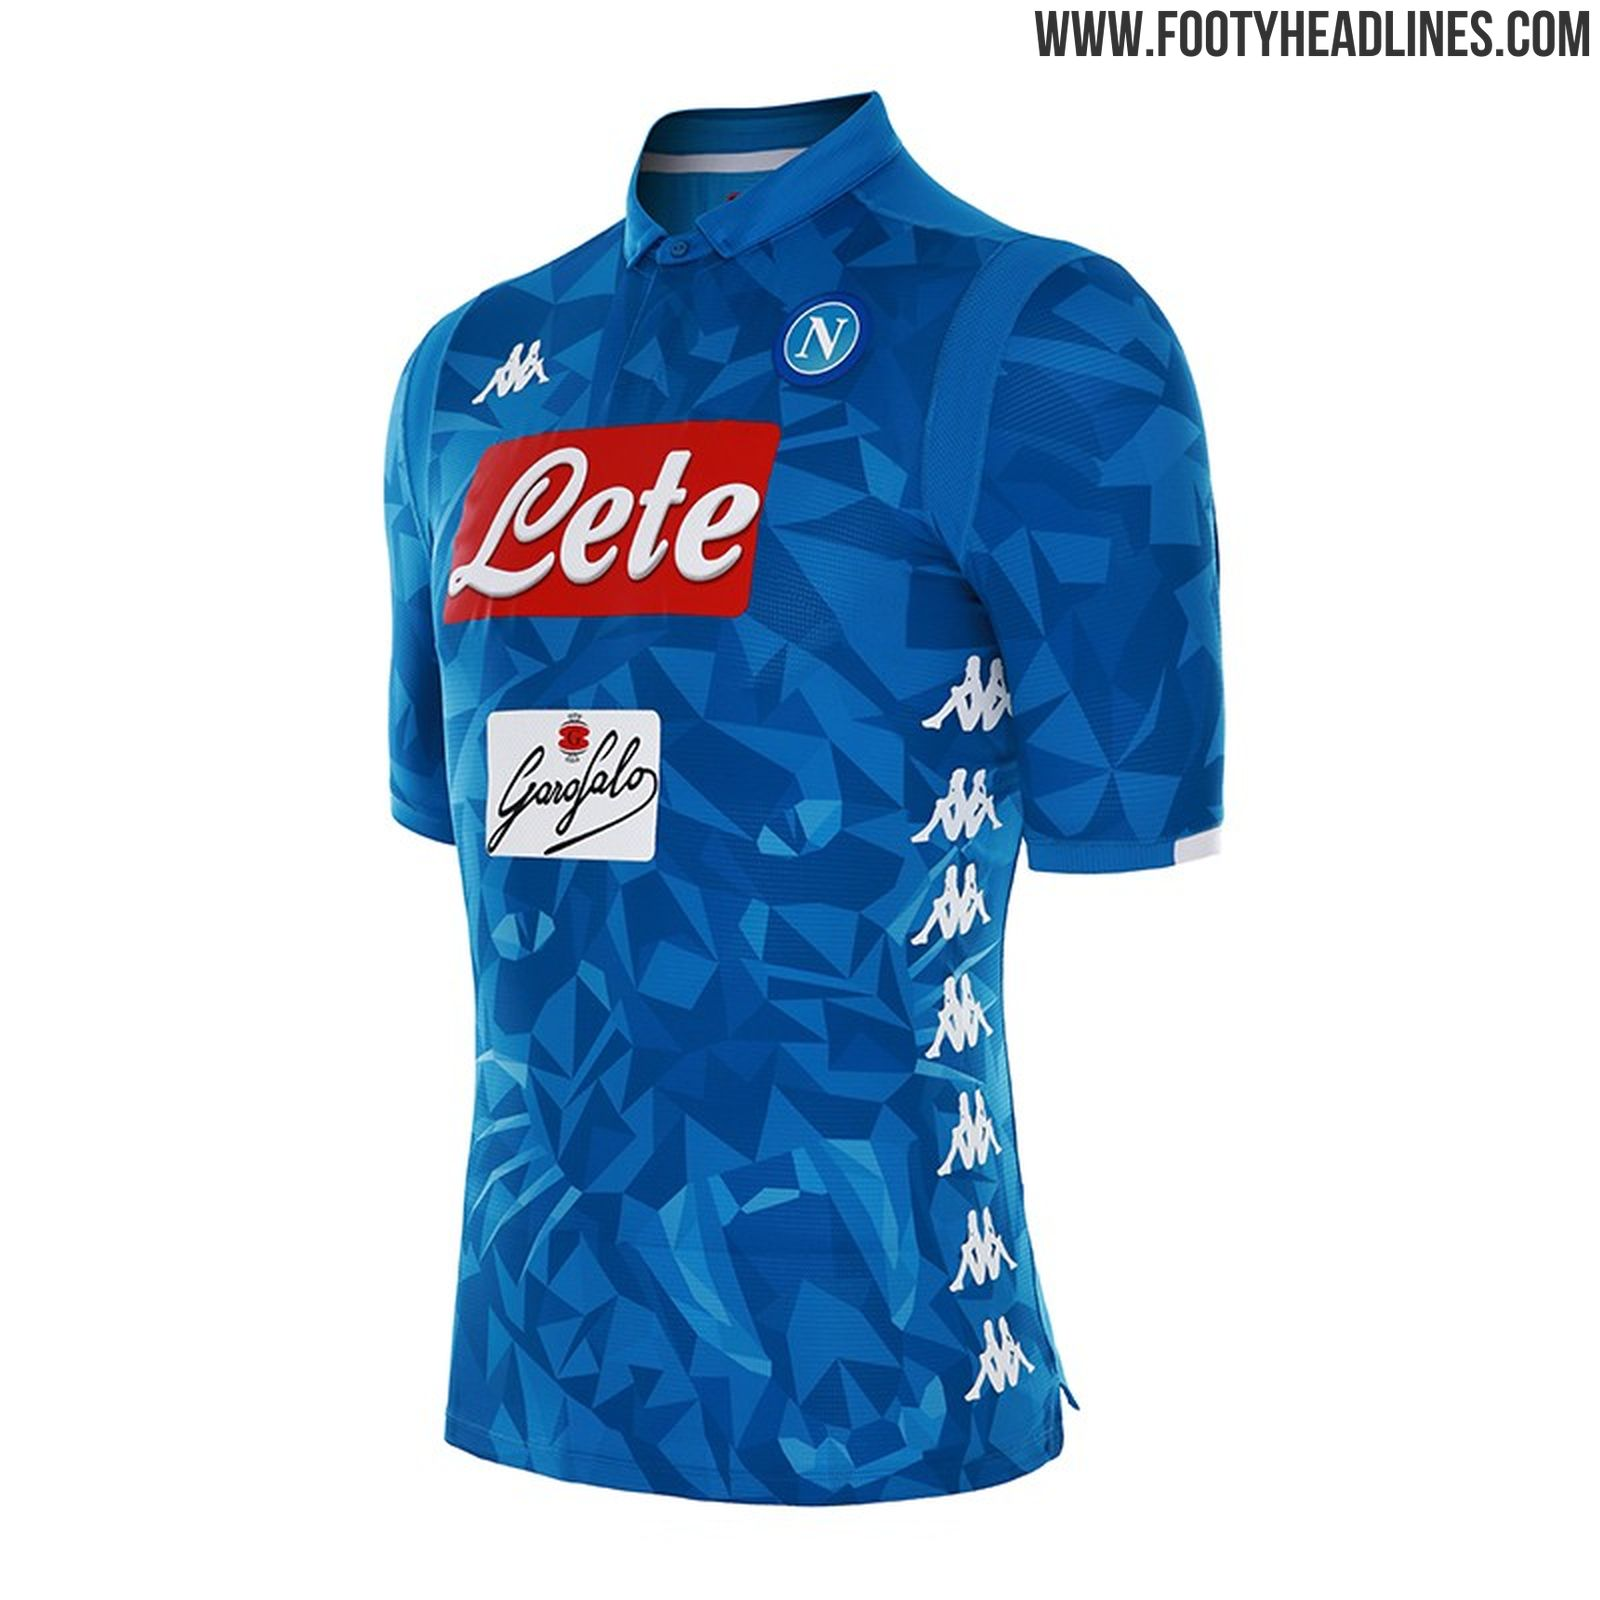 napoli-18-19-home-goalkeeper-kits-4.jpg